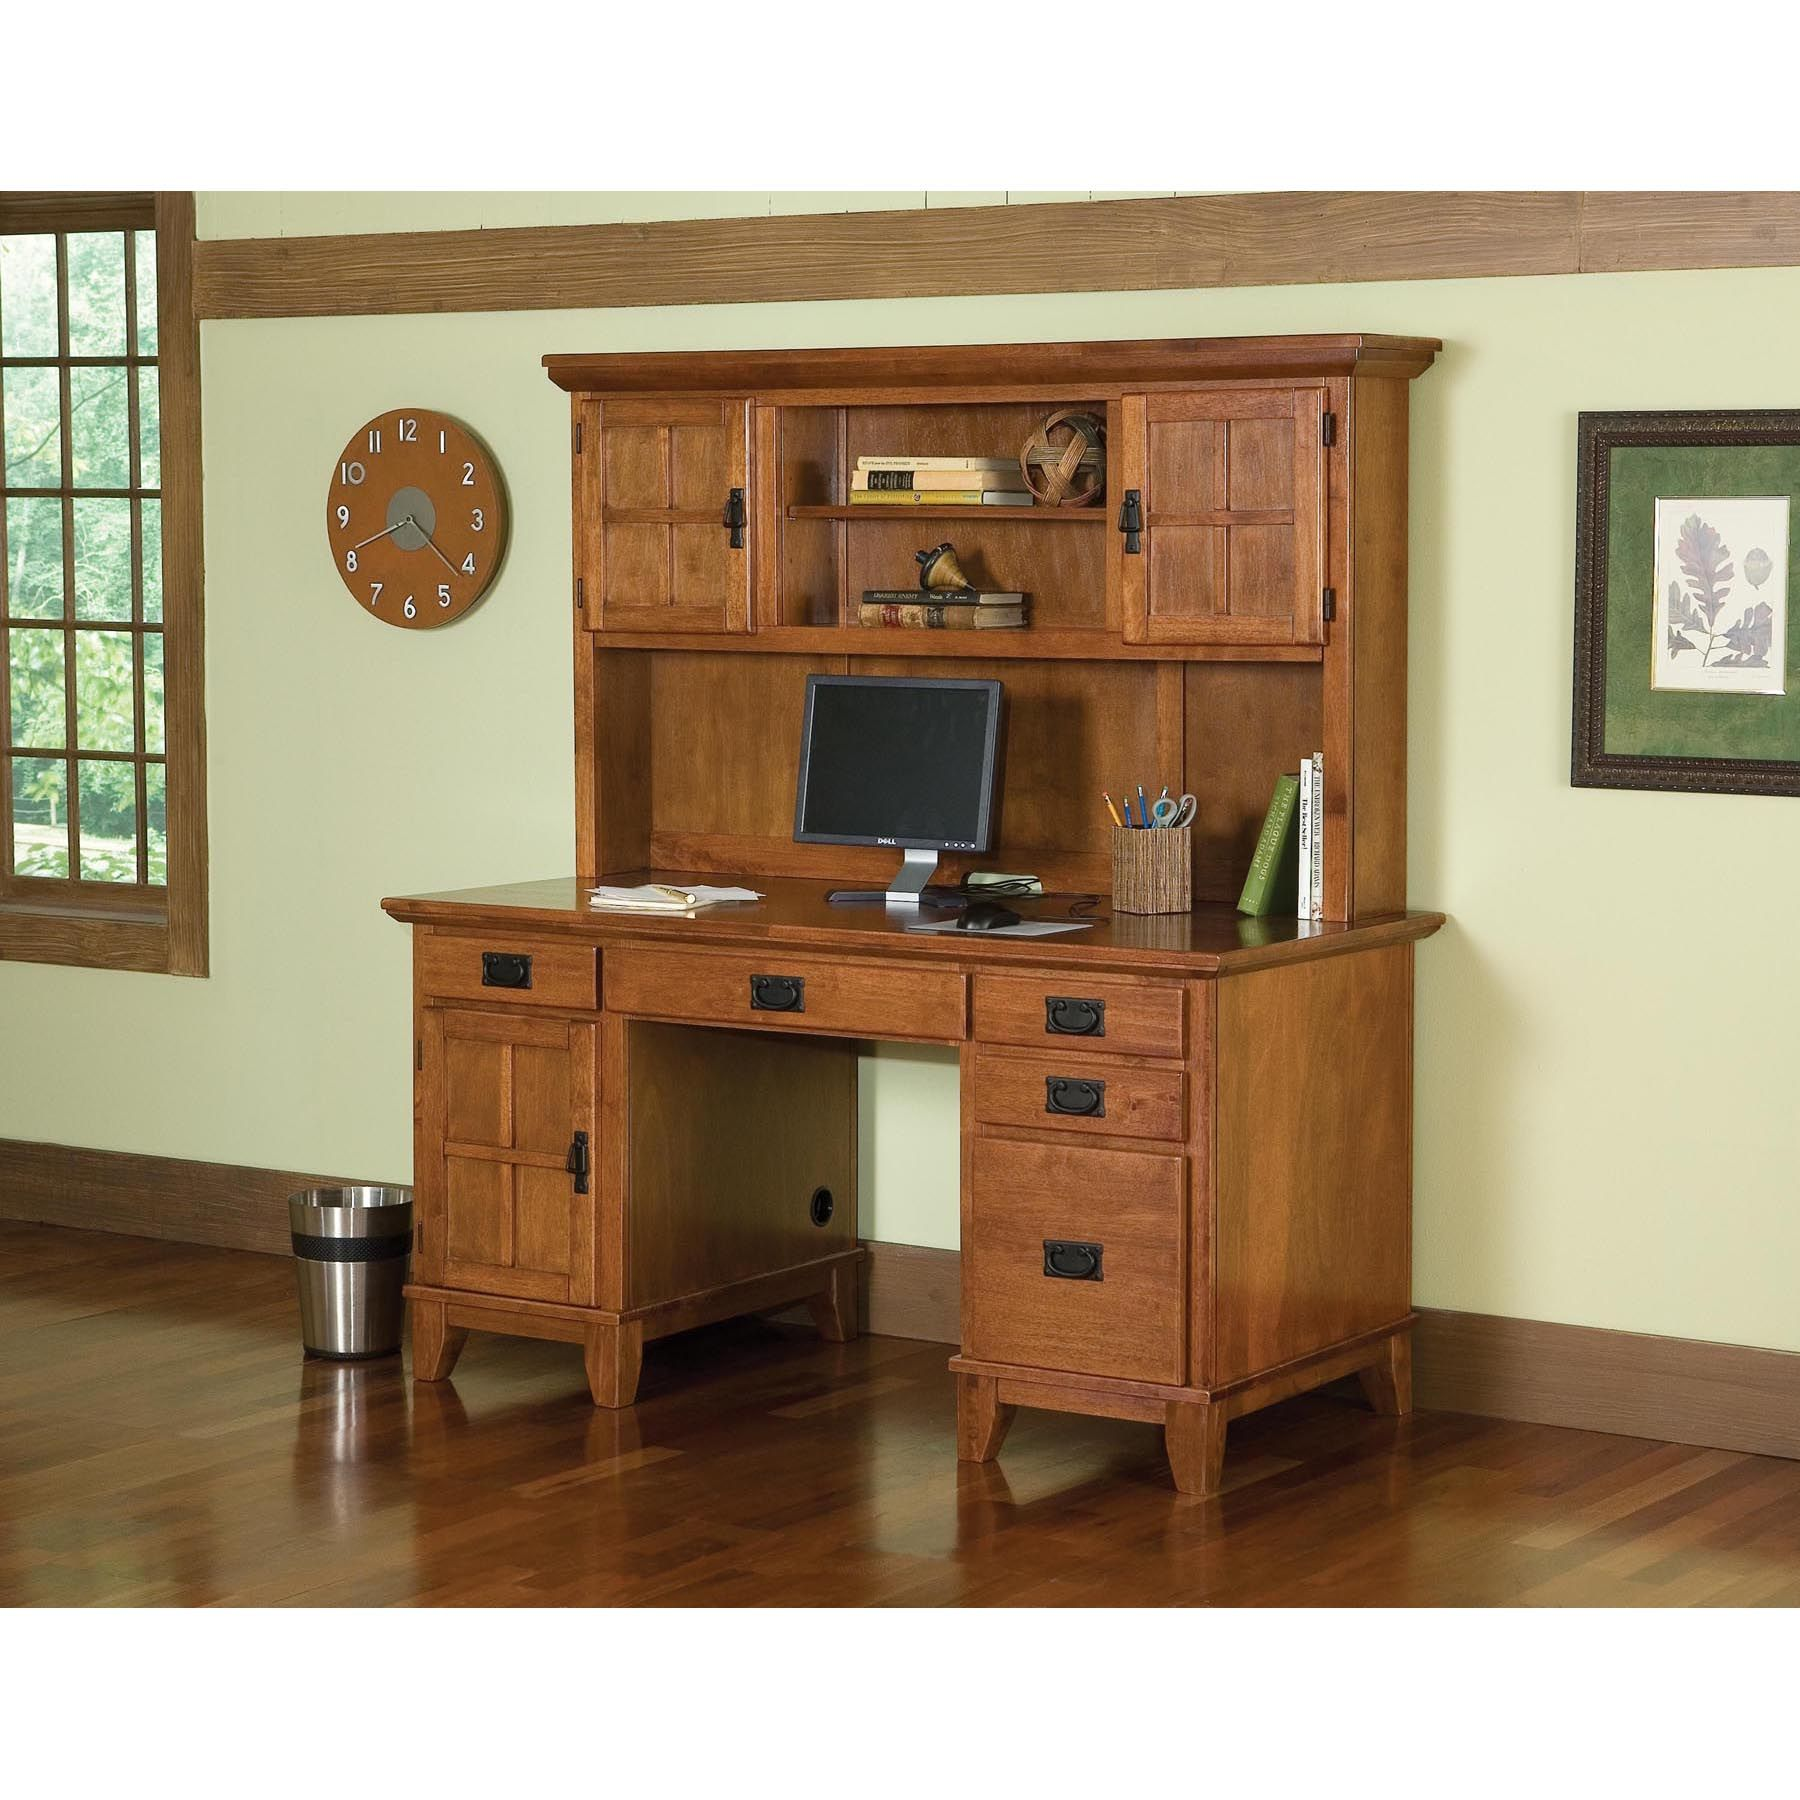 workstations with pinterest and bestar on desks pro u hutch computer legend raw linea desk executive shaped b pin l